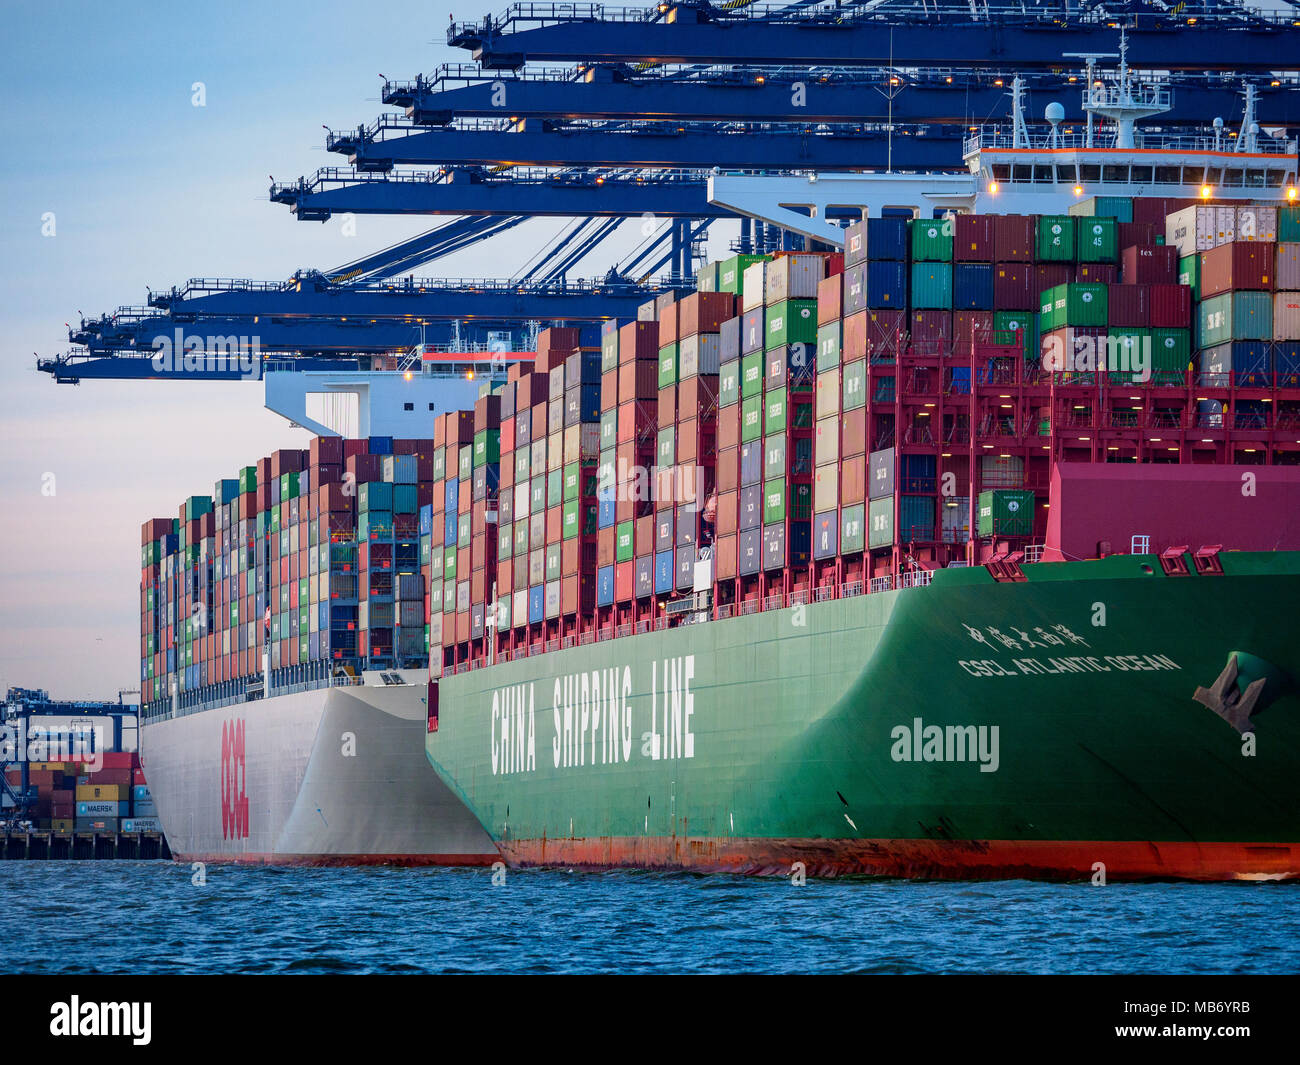 World Trade - Large Container Ships loading and unloading containers at the Port of Felixstowe, the UK's largest container port. - Stock Image